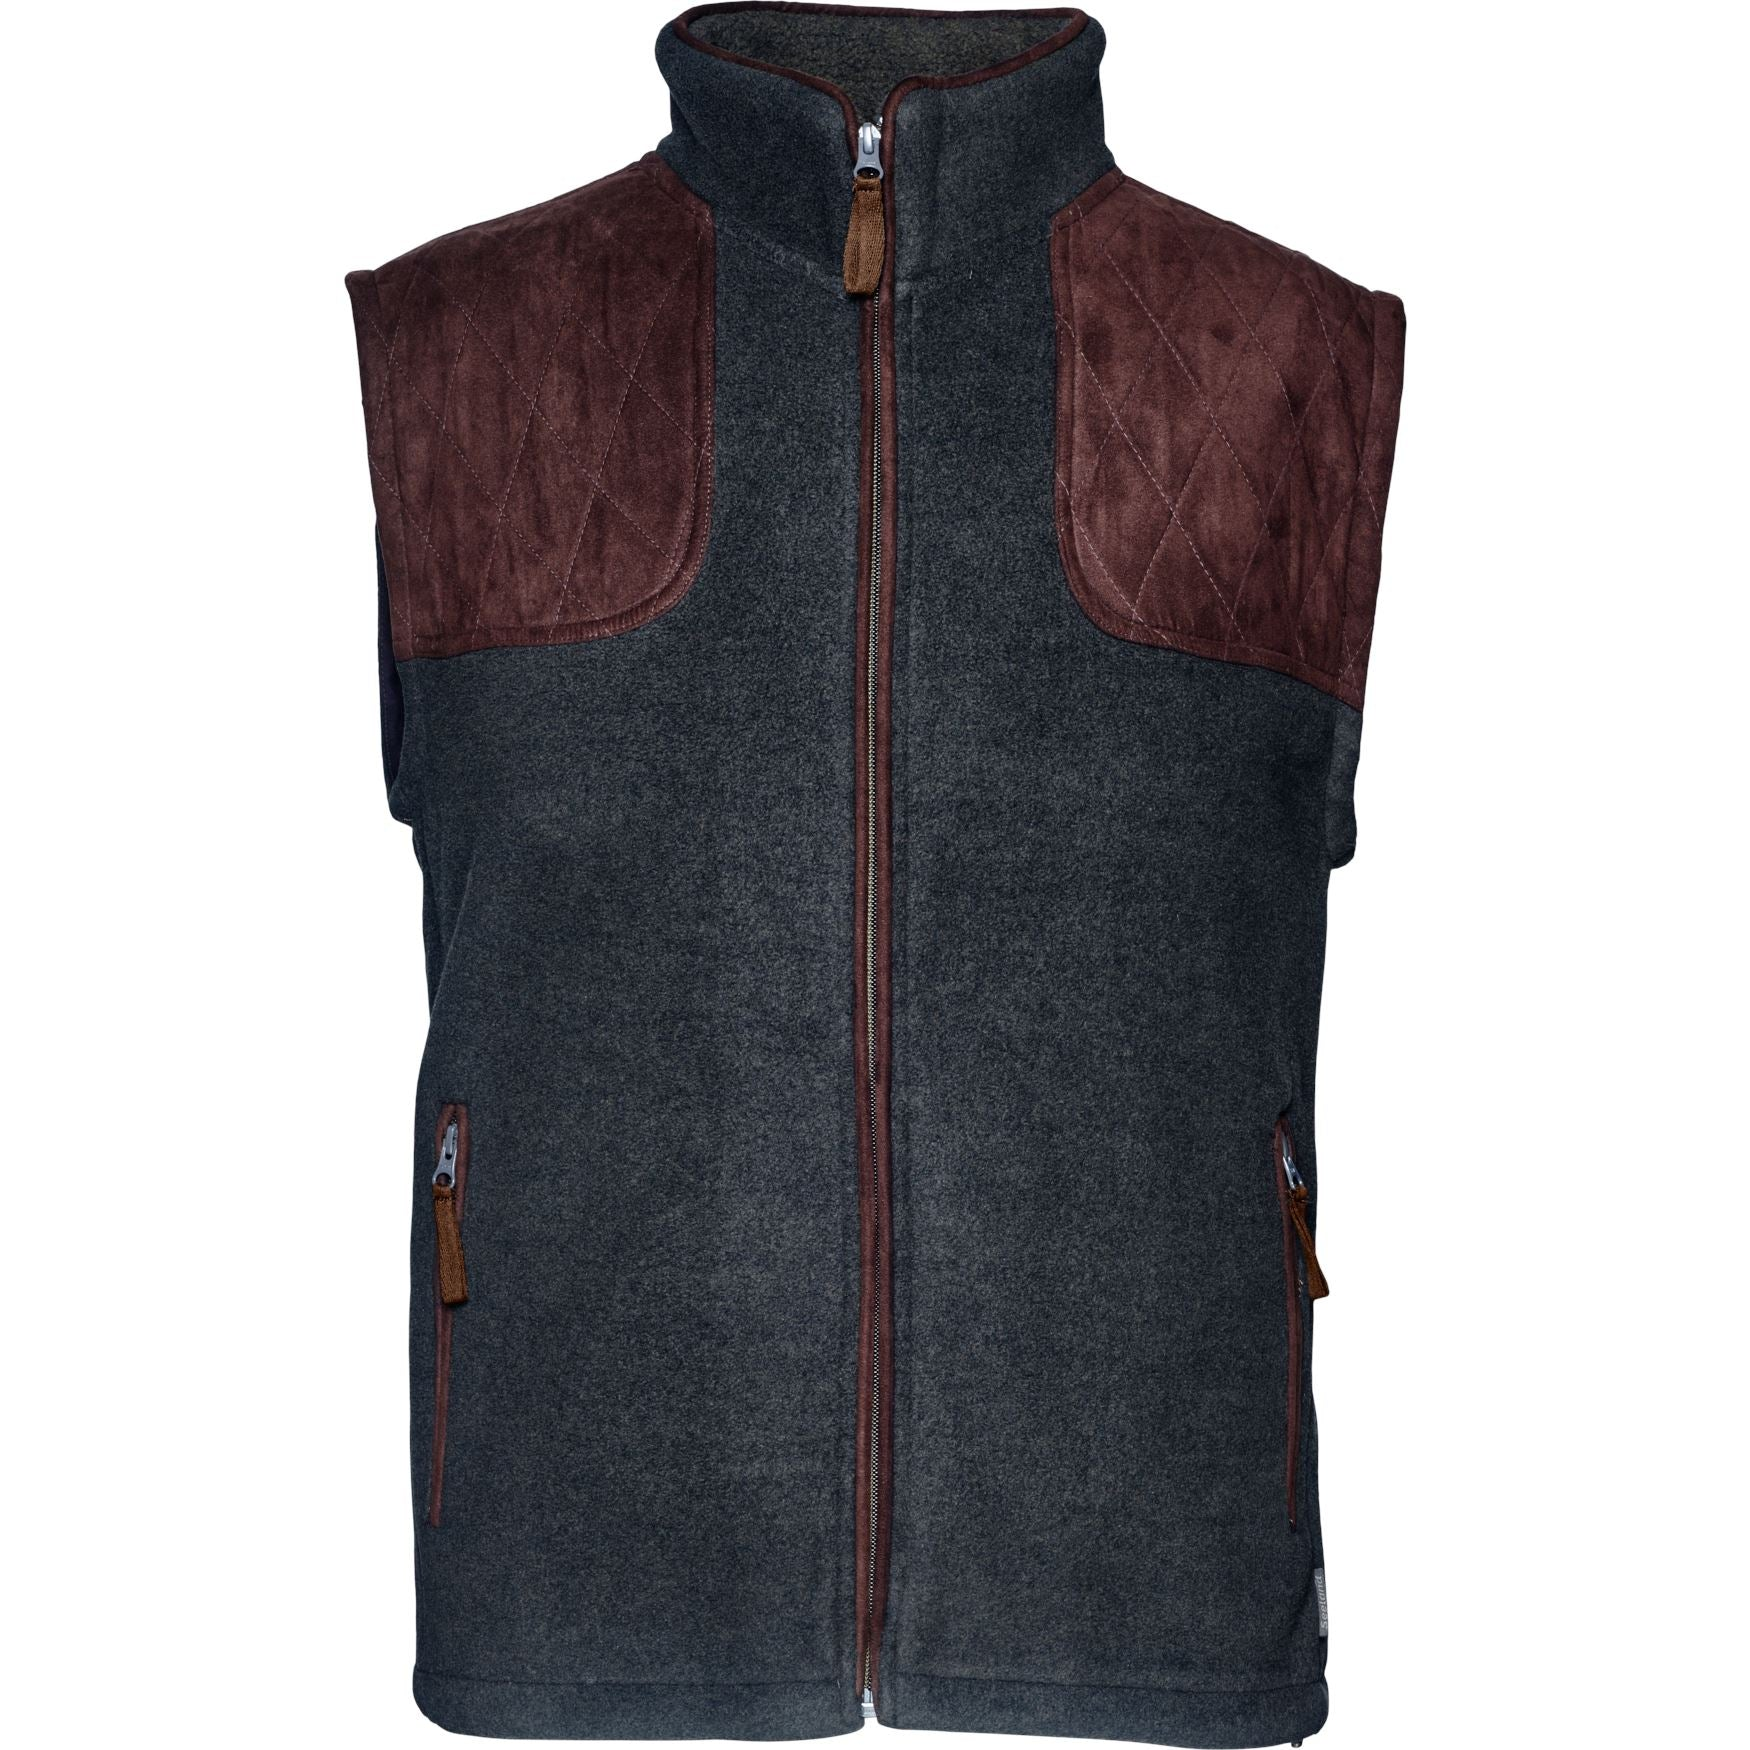 Seeland - William II fleece vest thumbnail